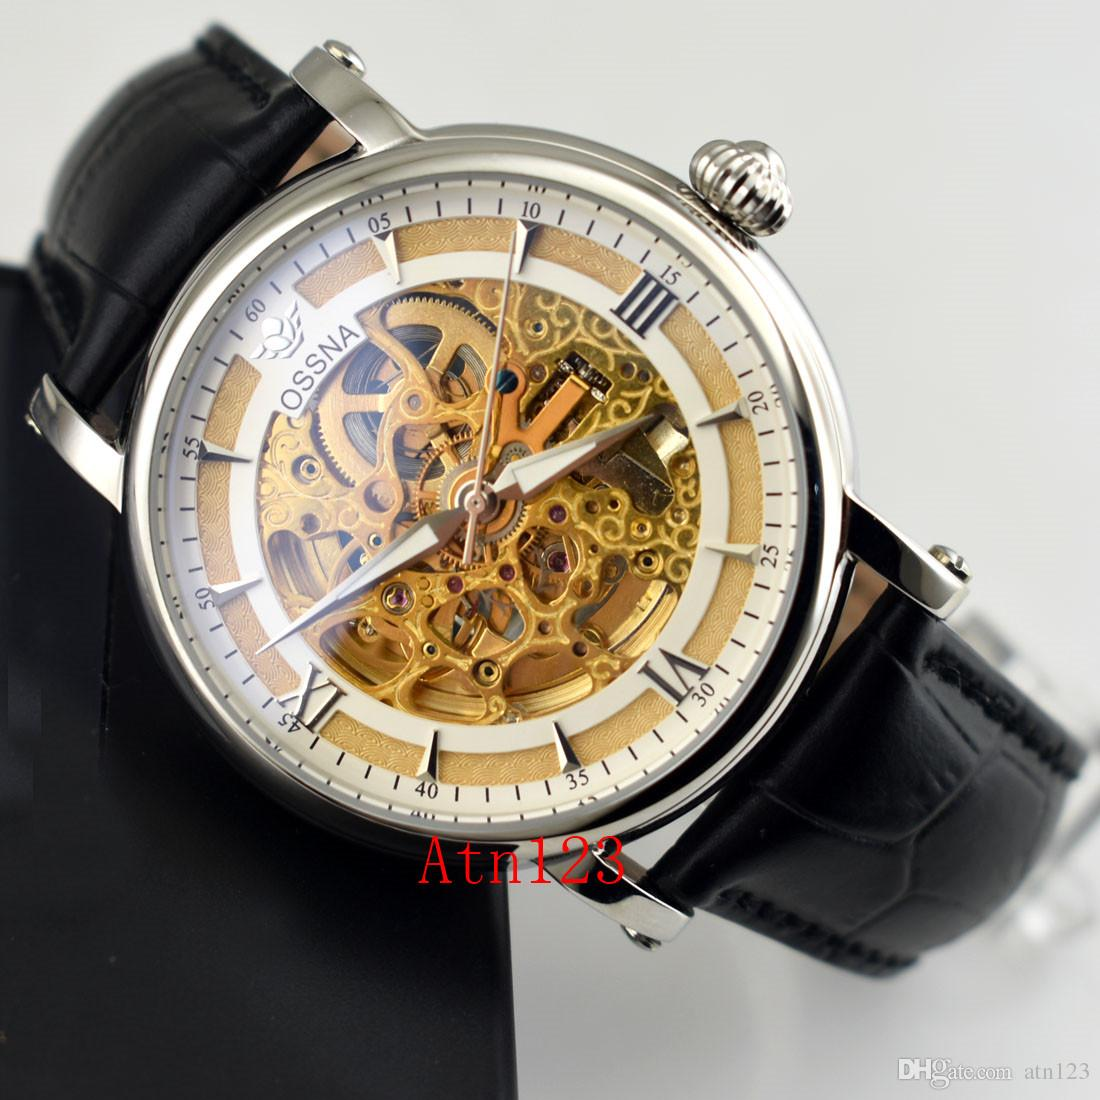 Ossna 41mm Hollow Skeleton Automatic Mechanical Date Day Stainless Steel Mens Watch 3ATM Water Resistantance Rating Wristwatch 2180/2181